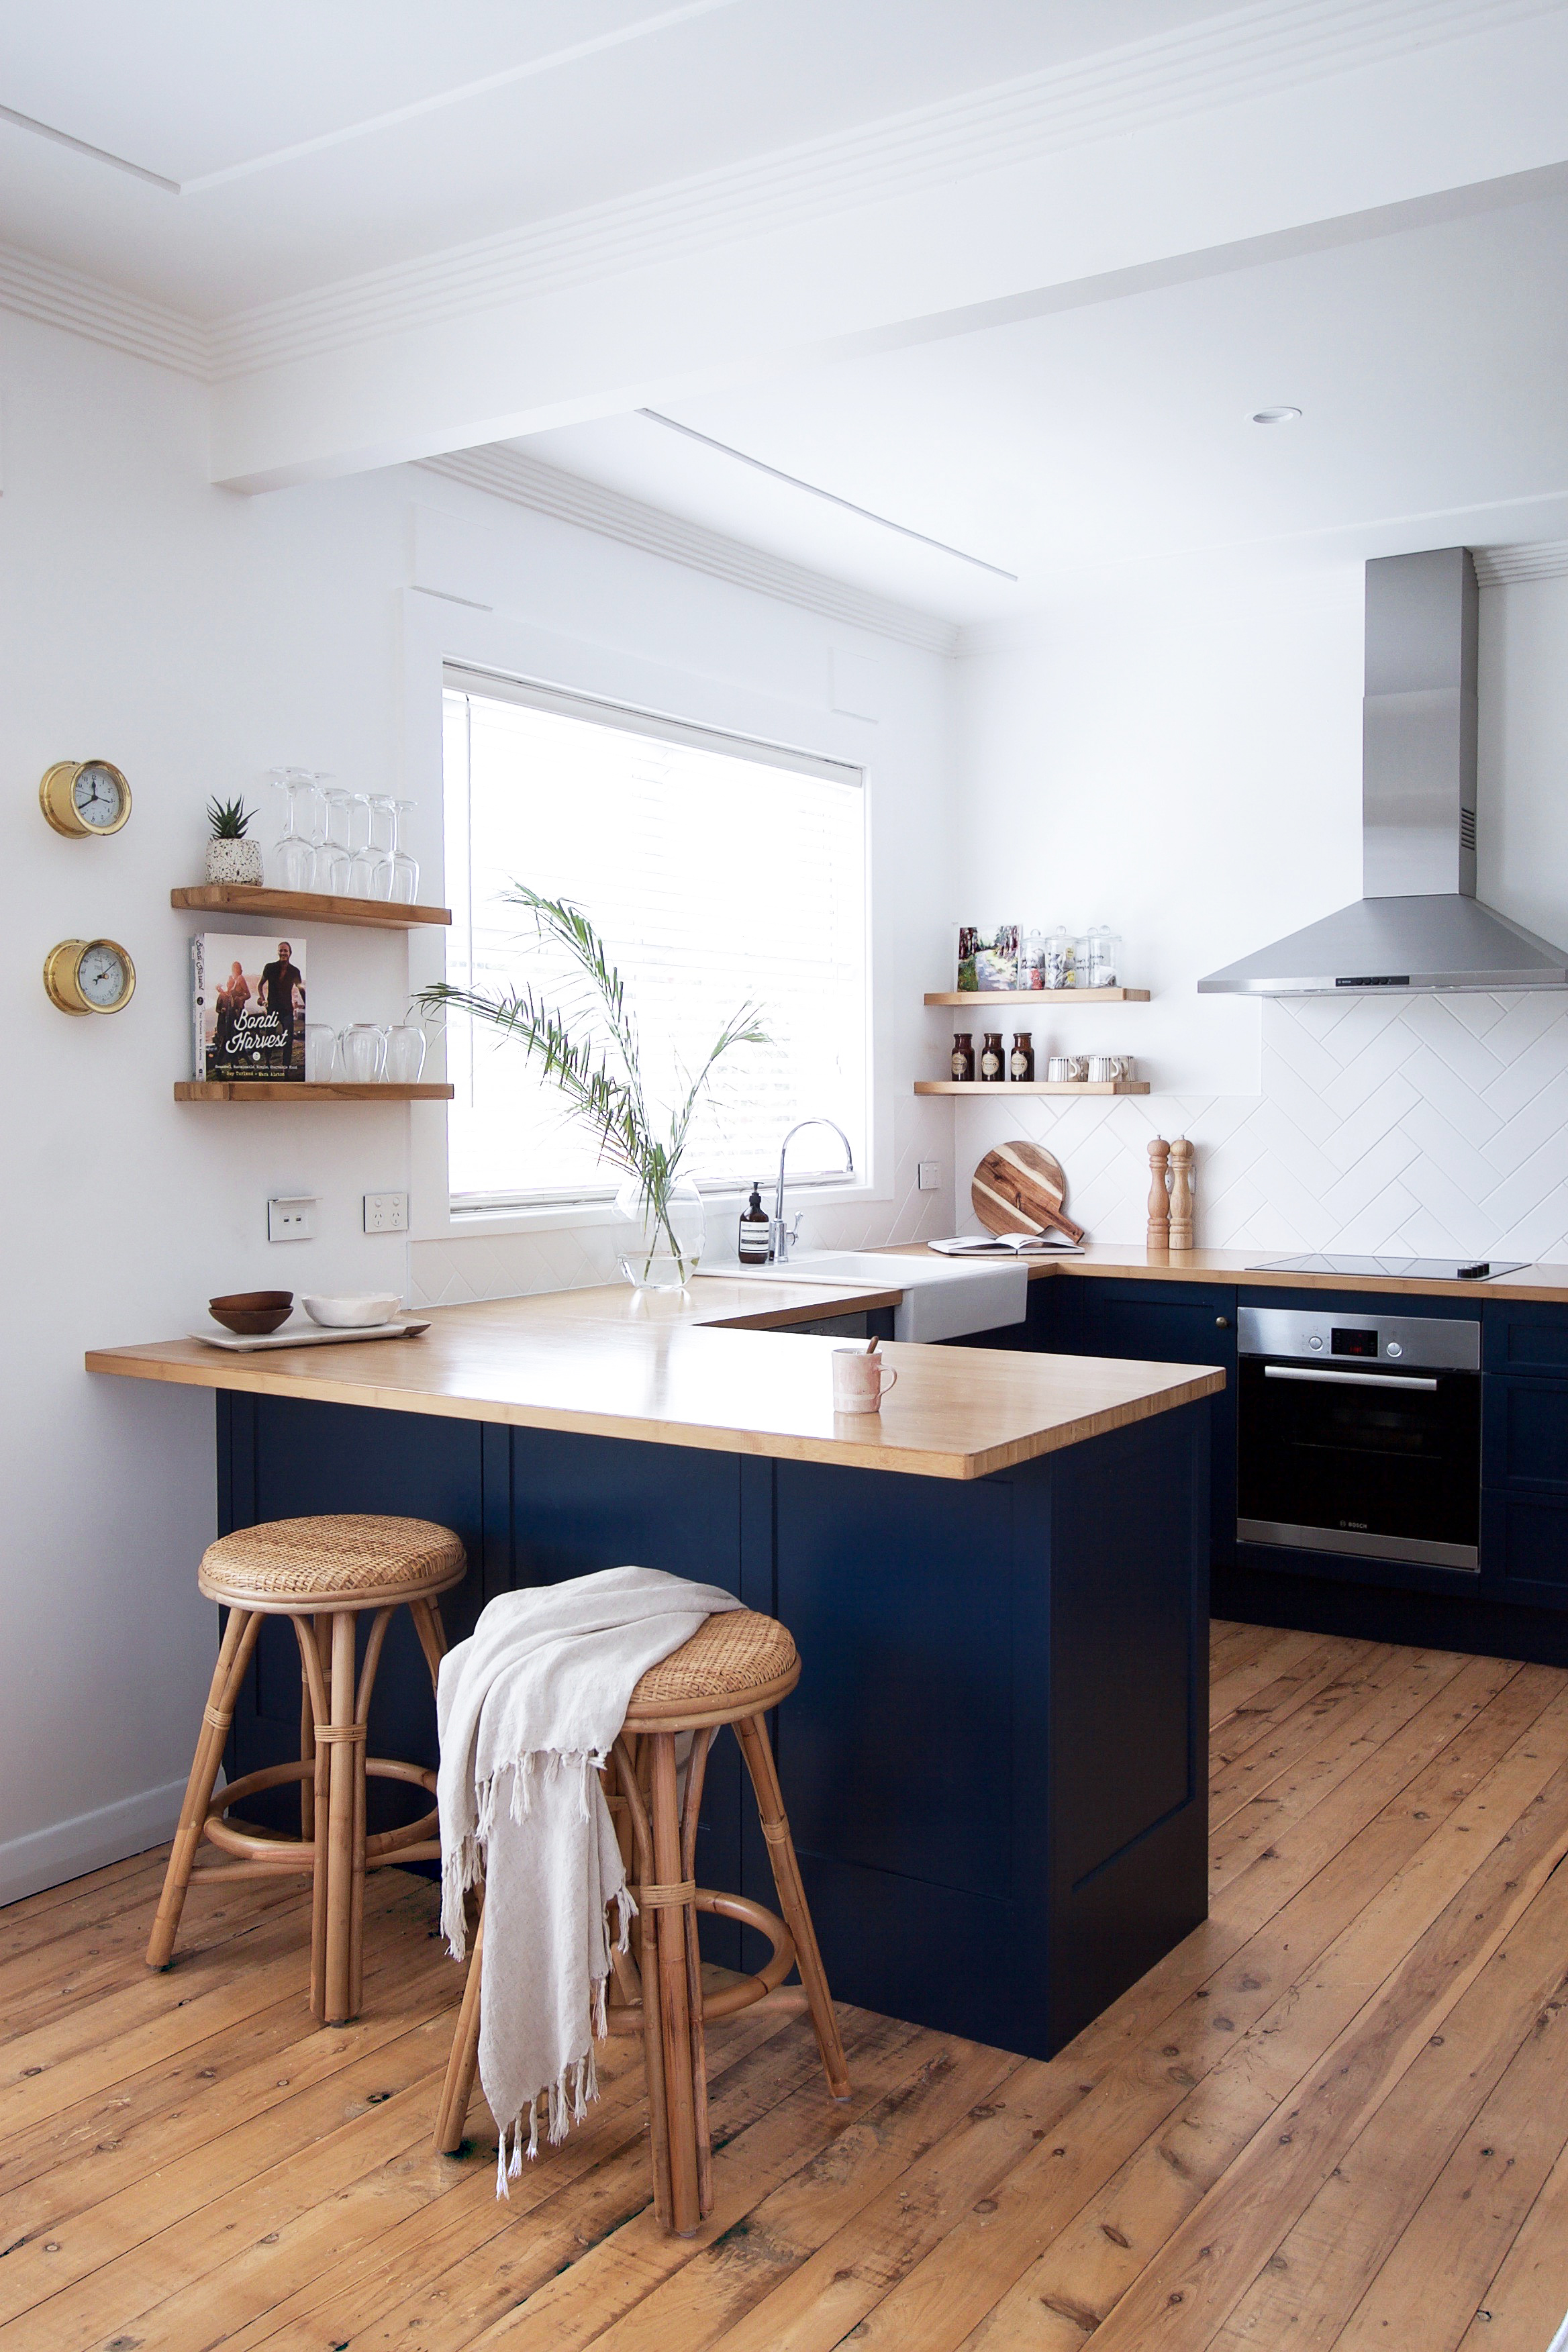 Hutchinson+House+kitchen+.jpg